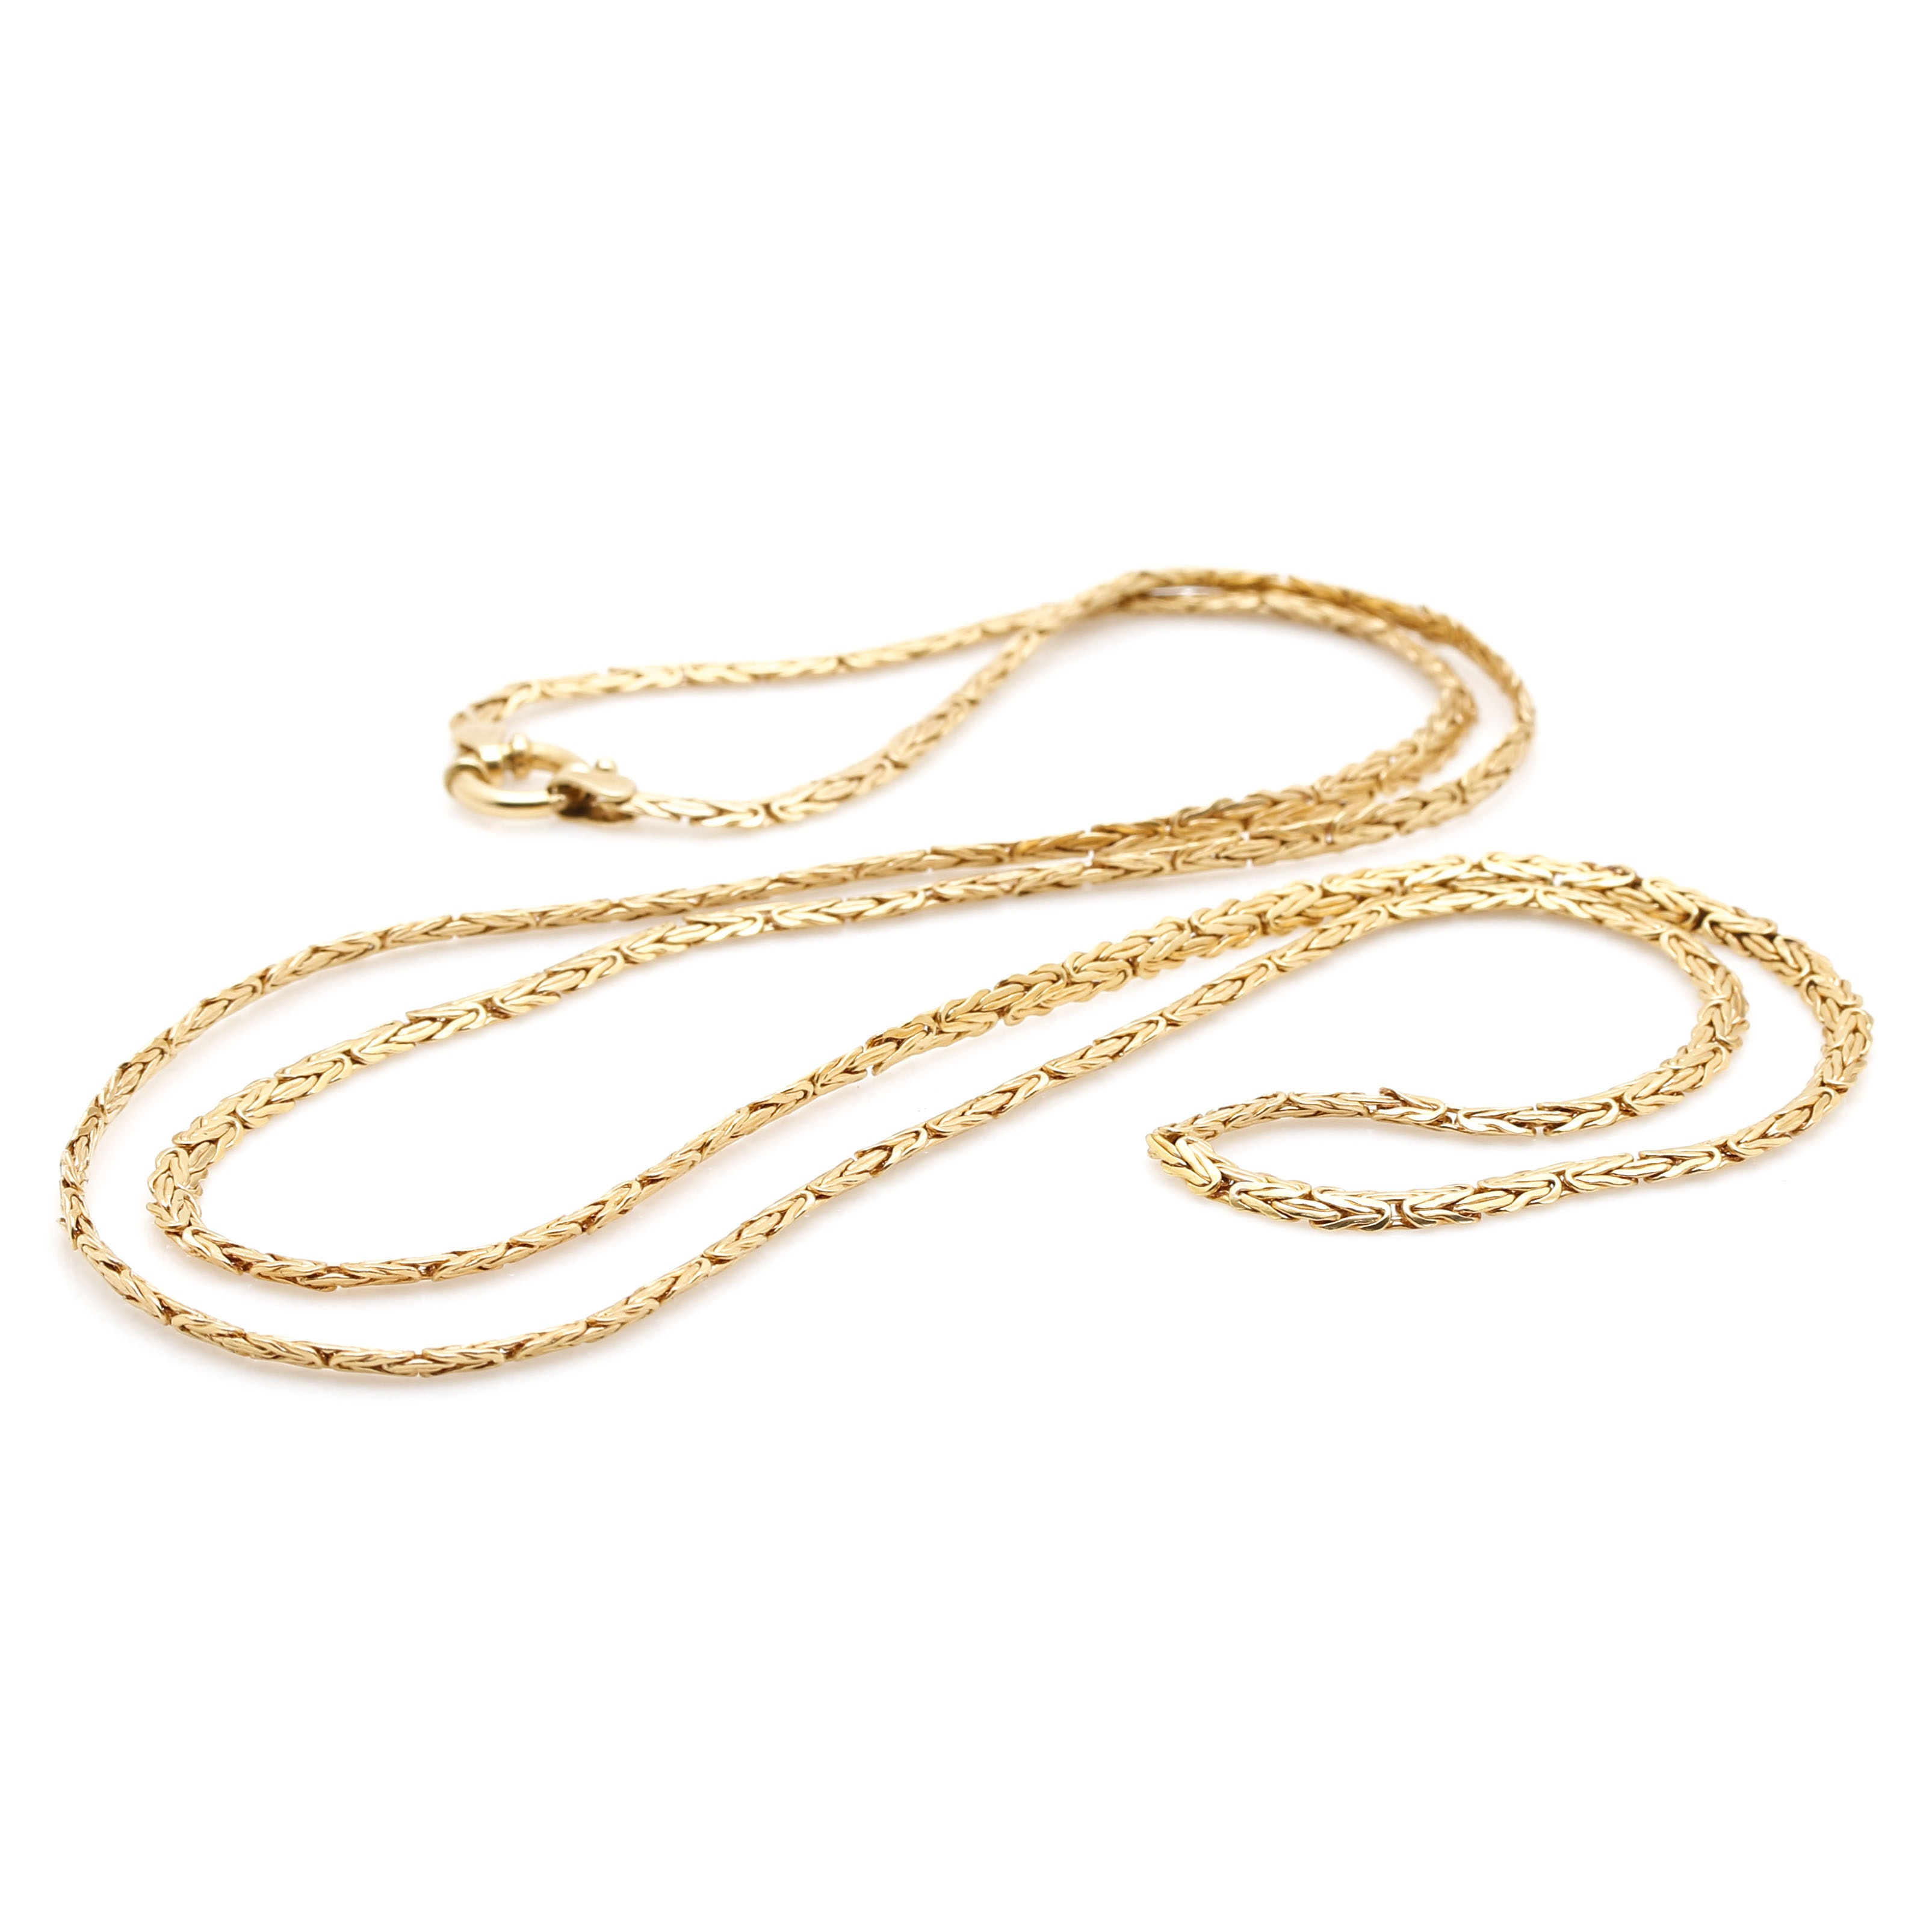 14K Yellow Gold Milor Byzantine Chain Necklace